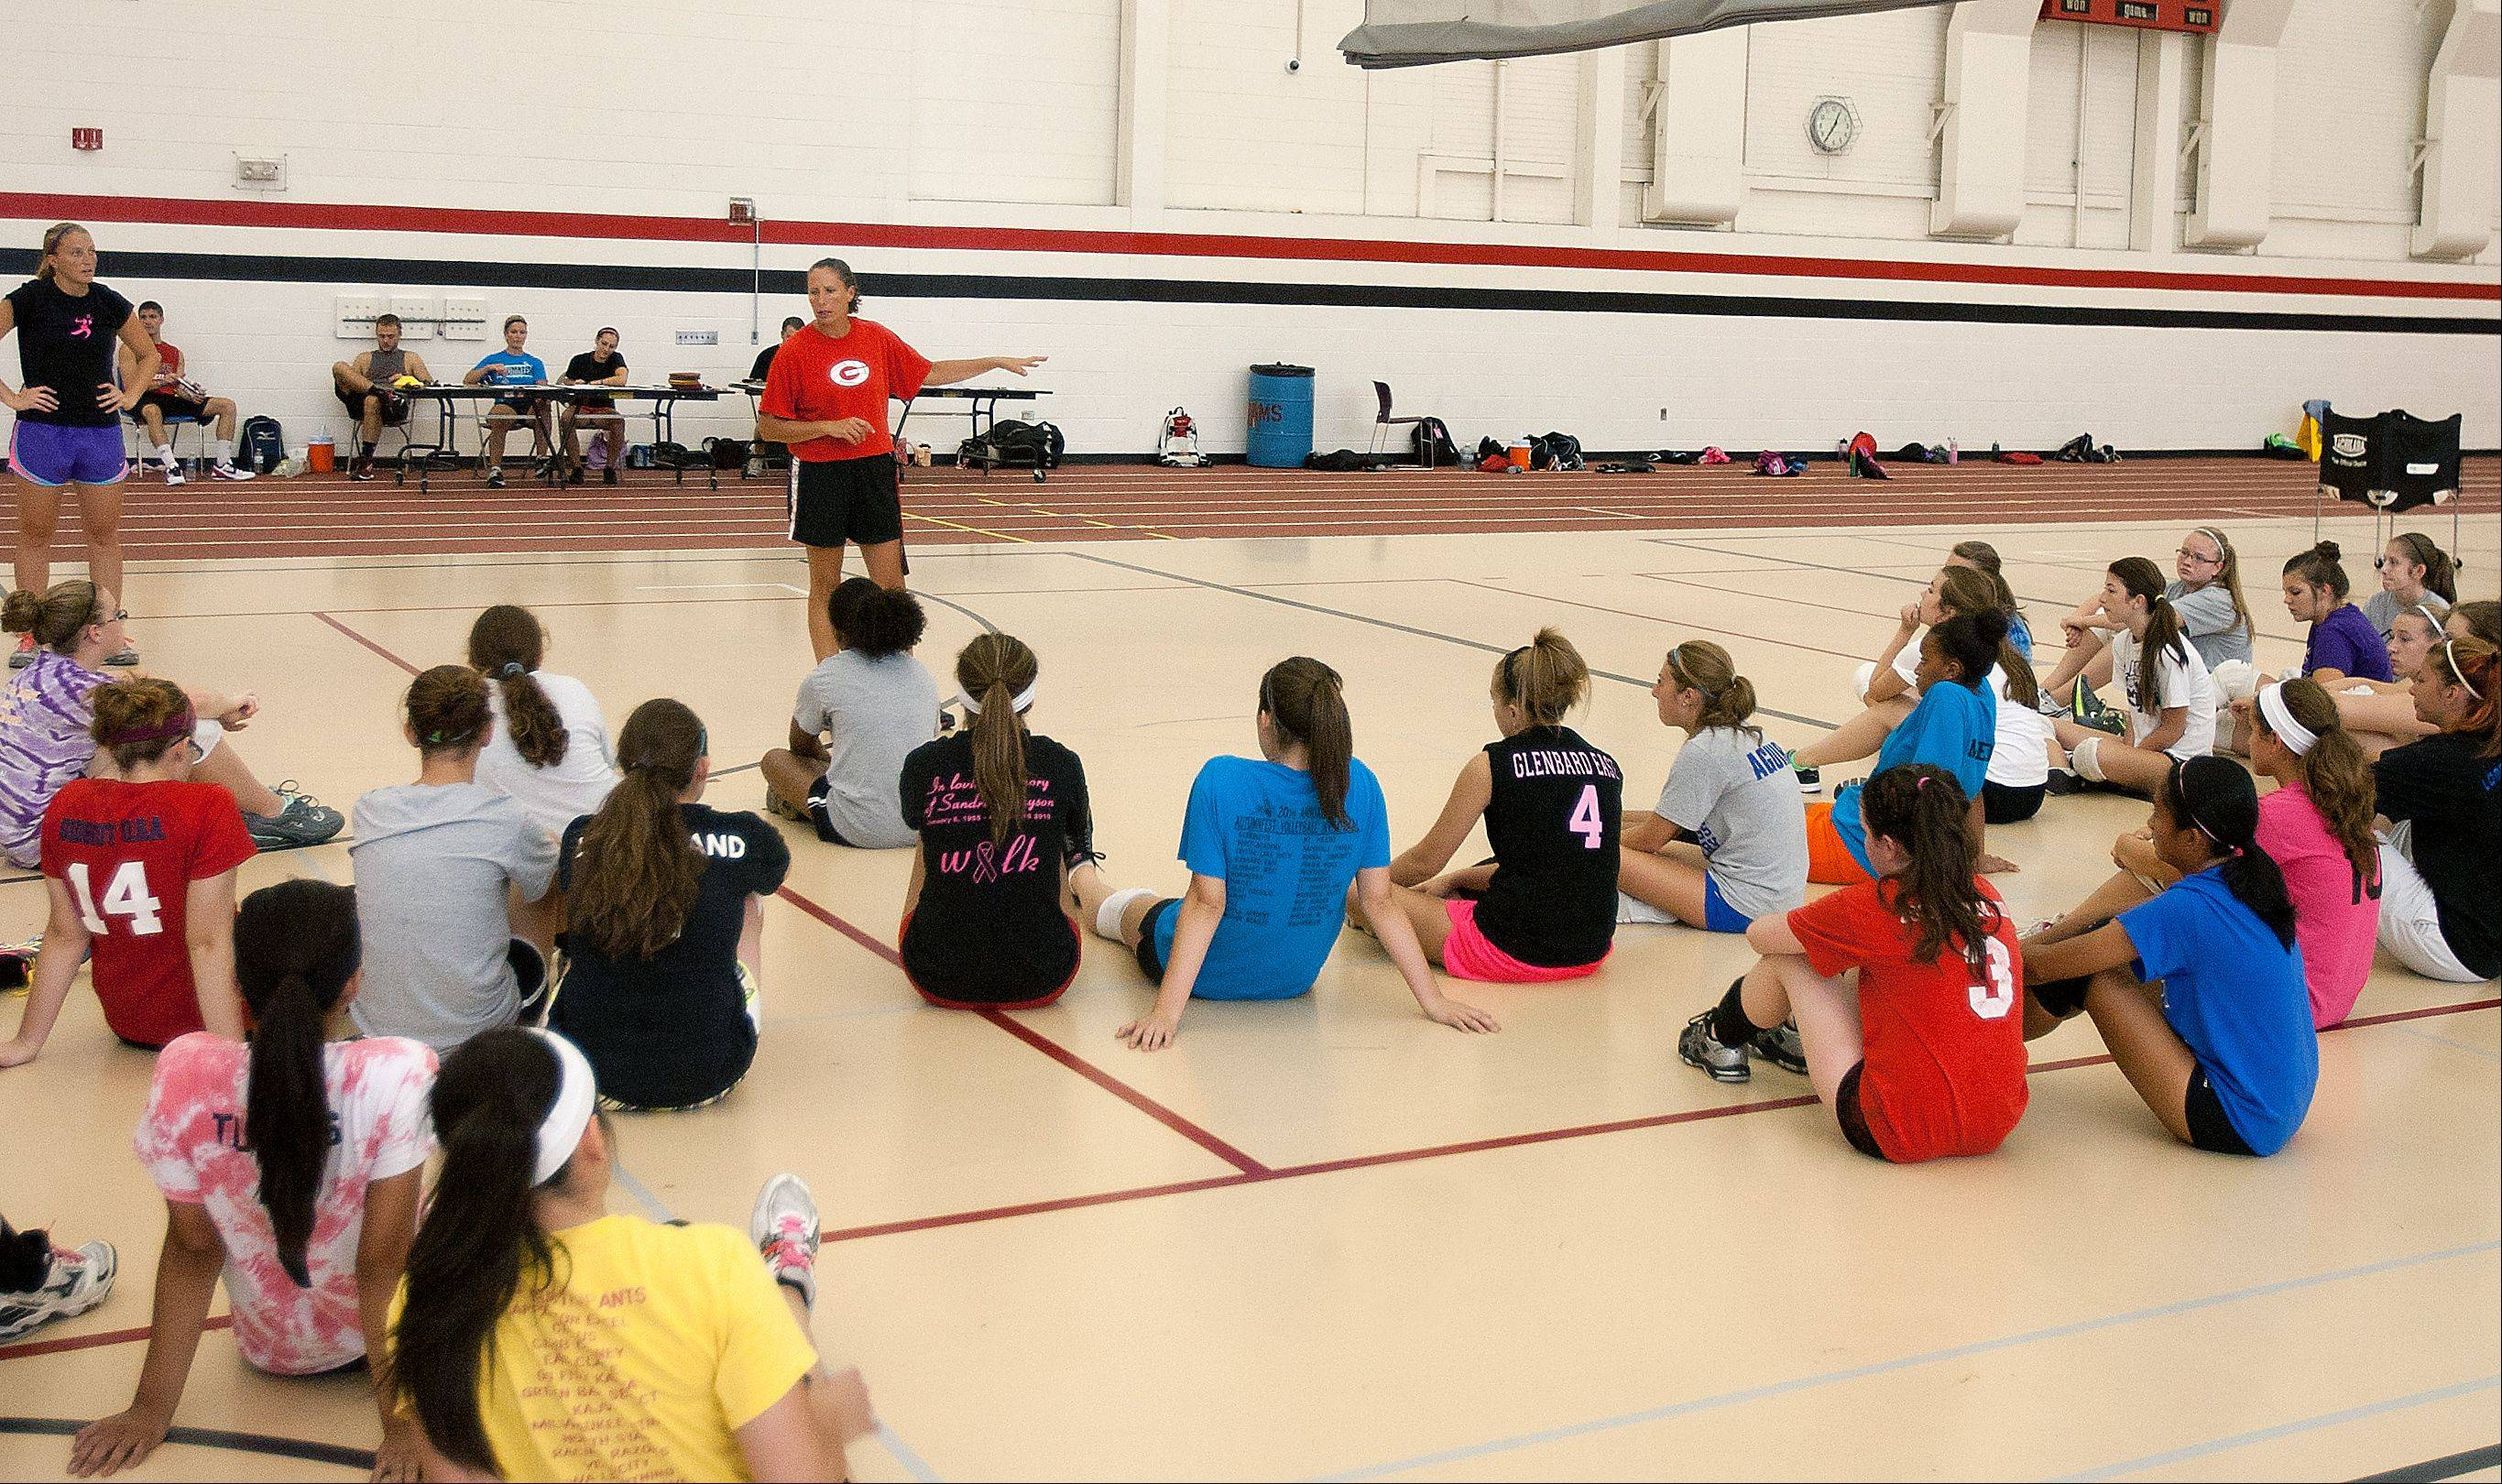 Girls and boys both participate in Glenbard East High School's summer volleyball camp run by coach Marci Maier. Students say the school offers equal athletic opportunities by running coed camps and allowing girls and boys both to practice with the other gender's team as volleyball trainers.